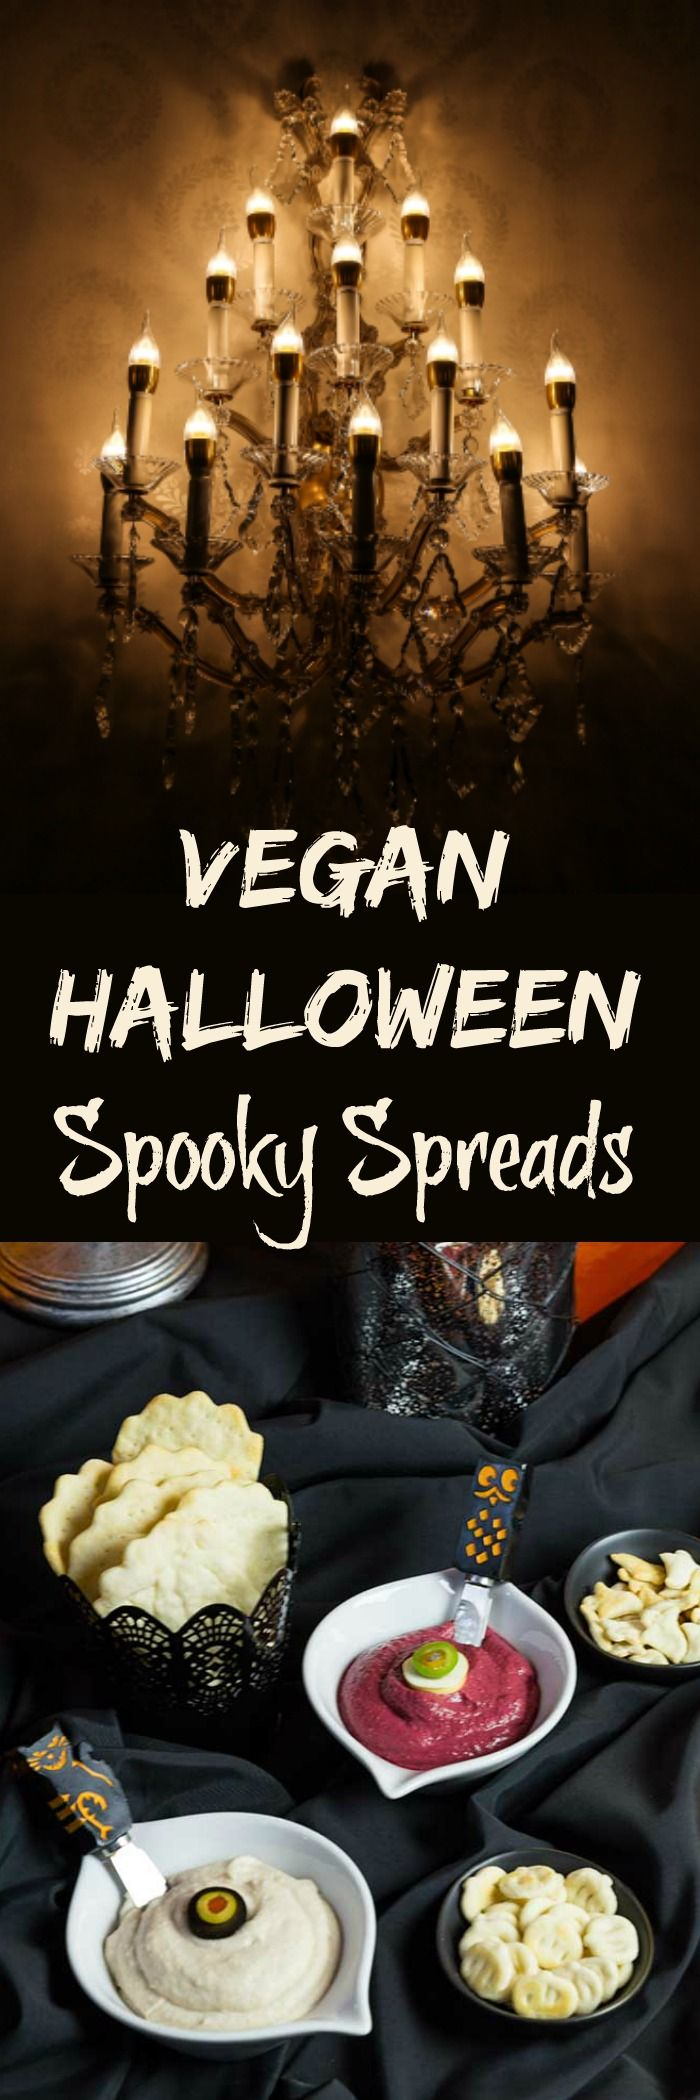 124 best images about Vegan Halloween on Pinterest